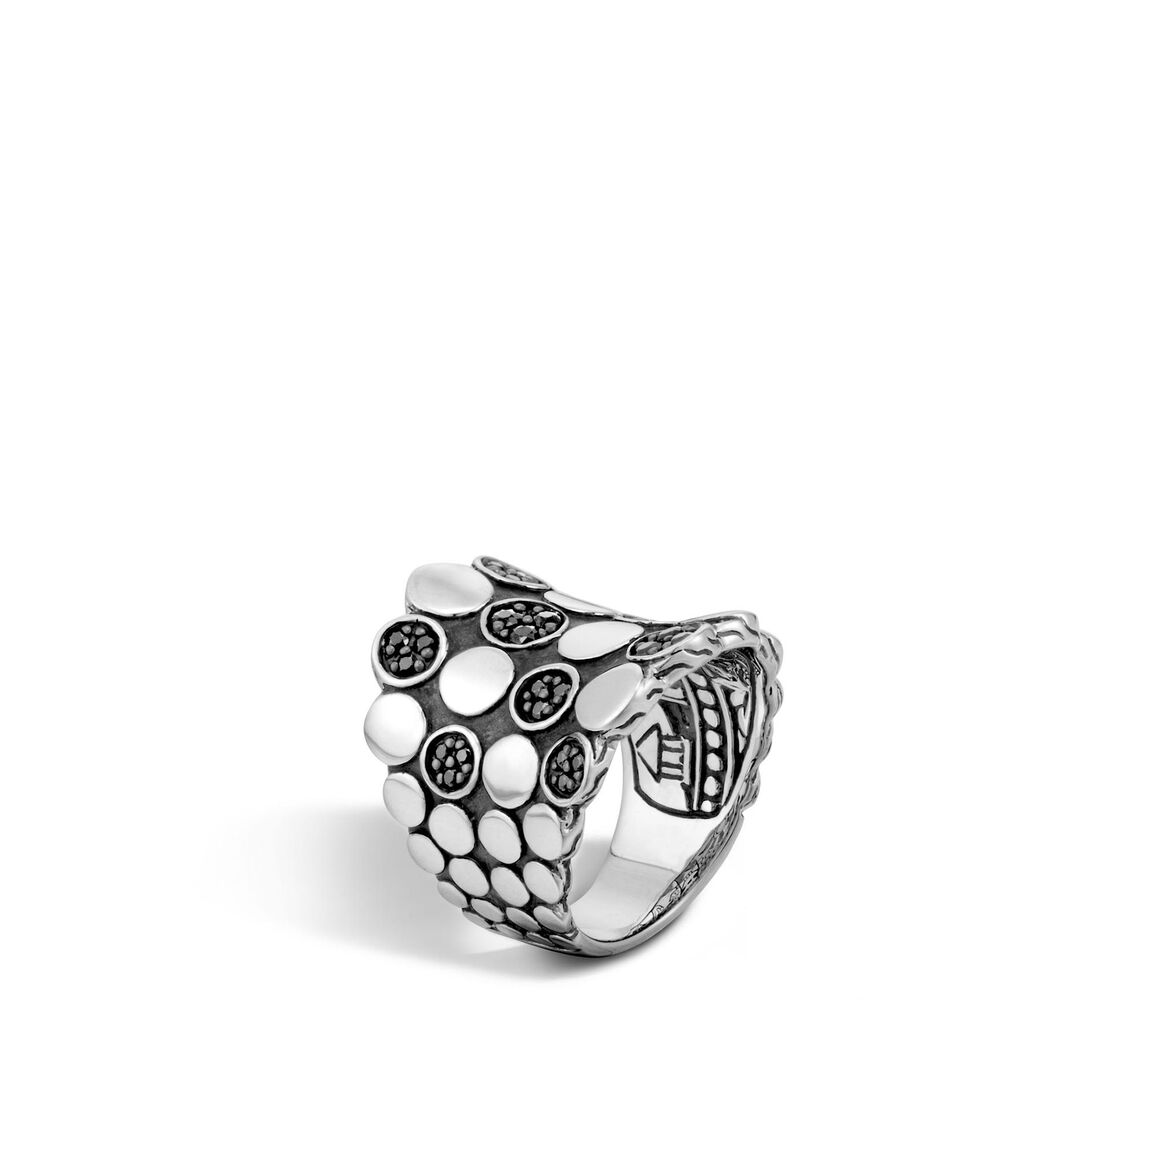 Dot Saddle Ring in Silver with Gemstone